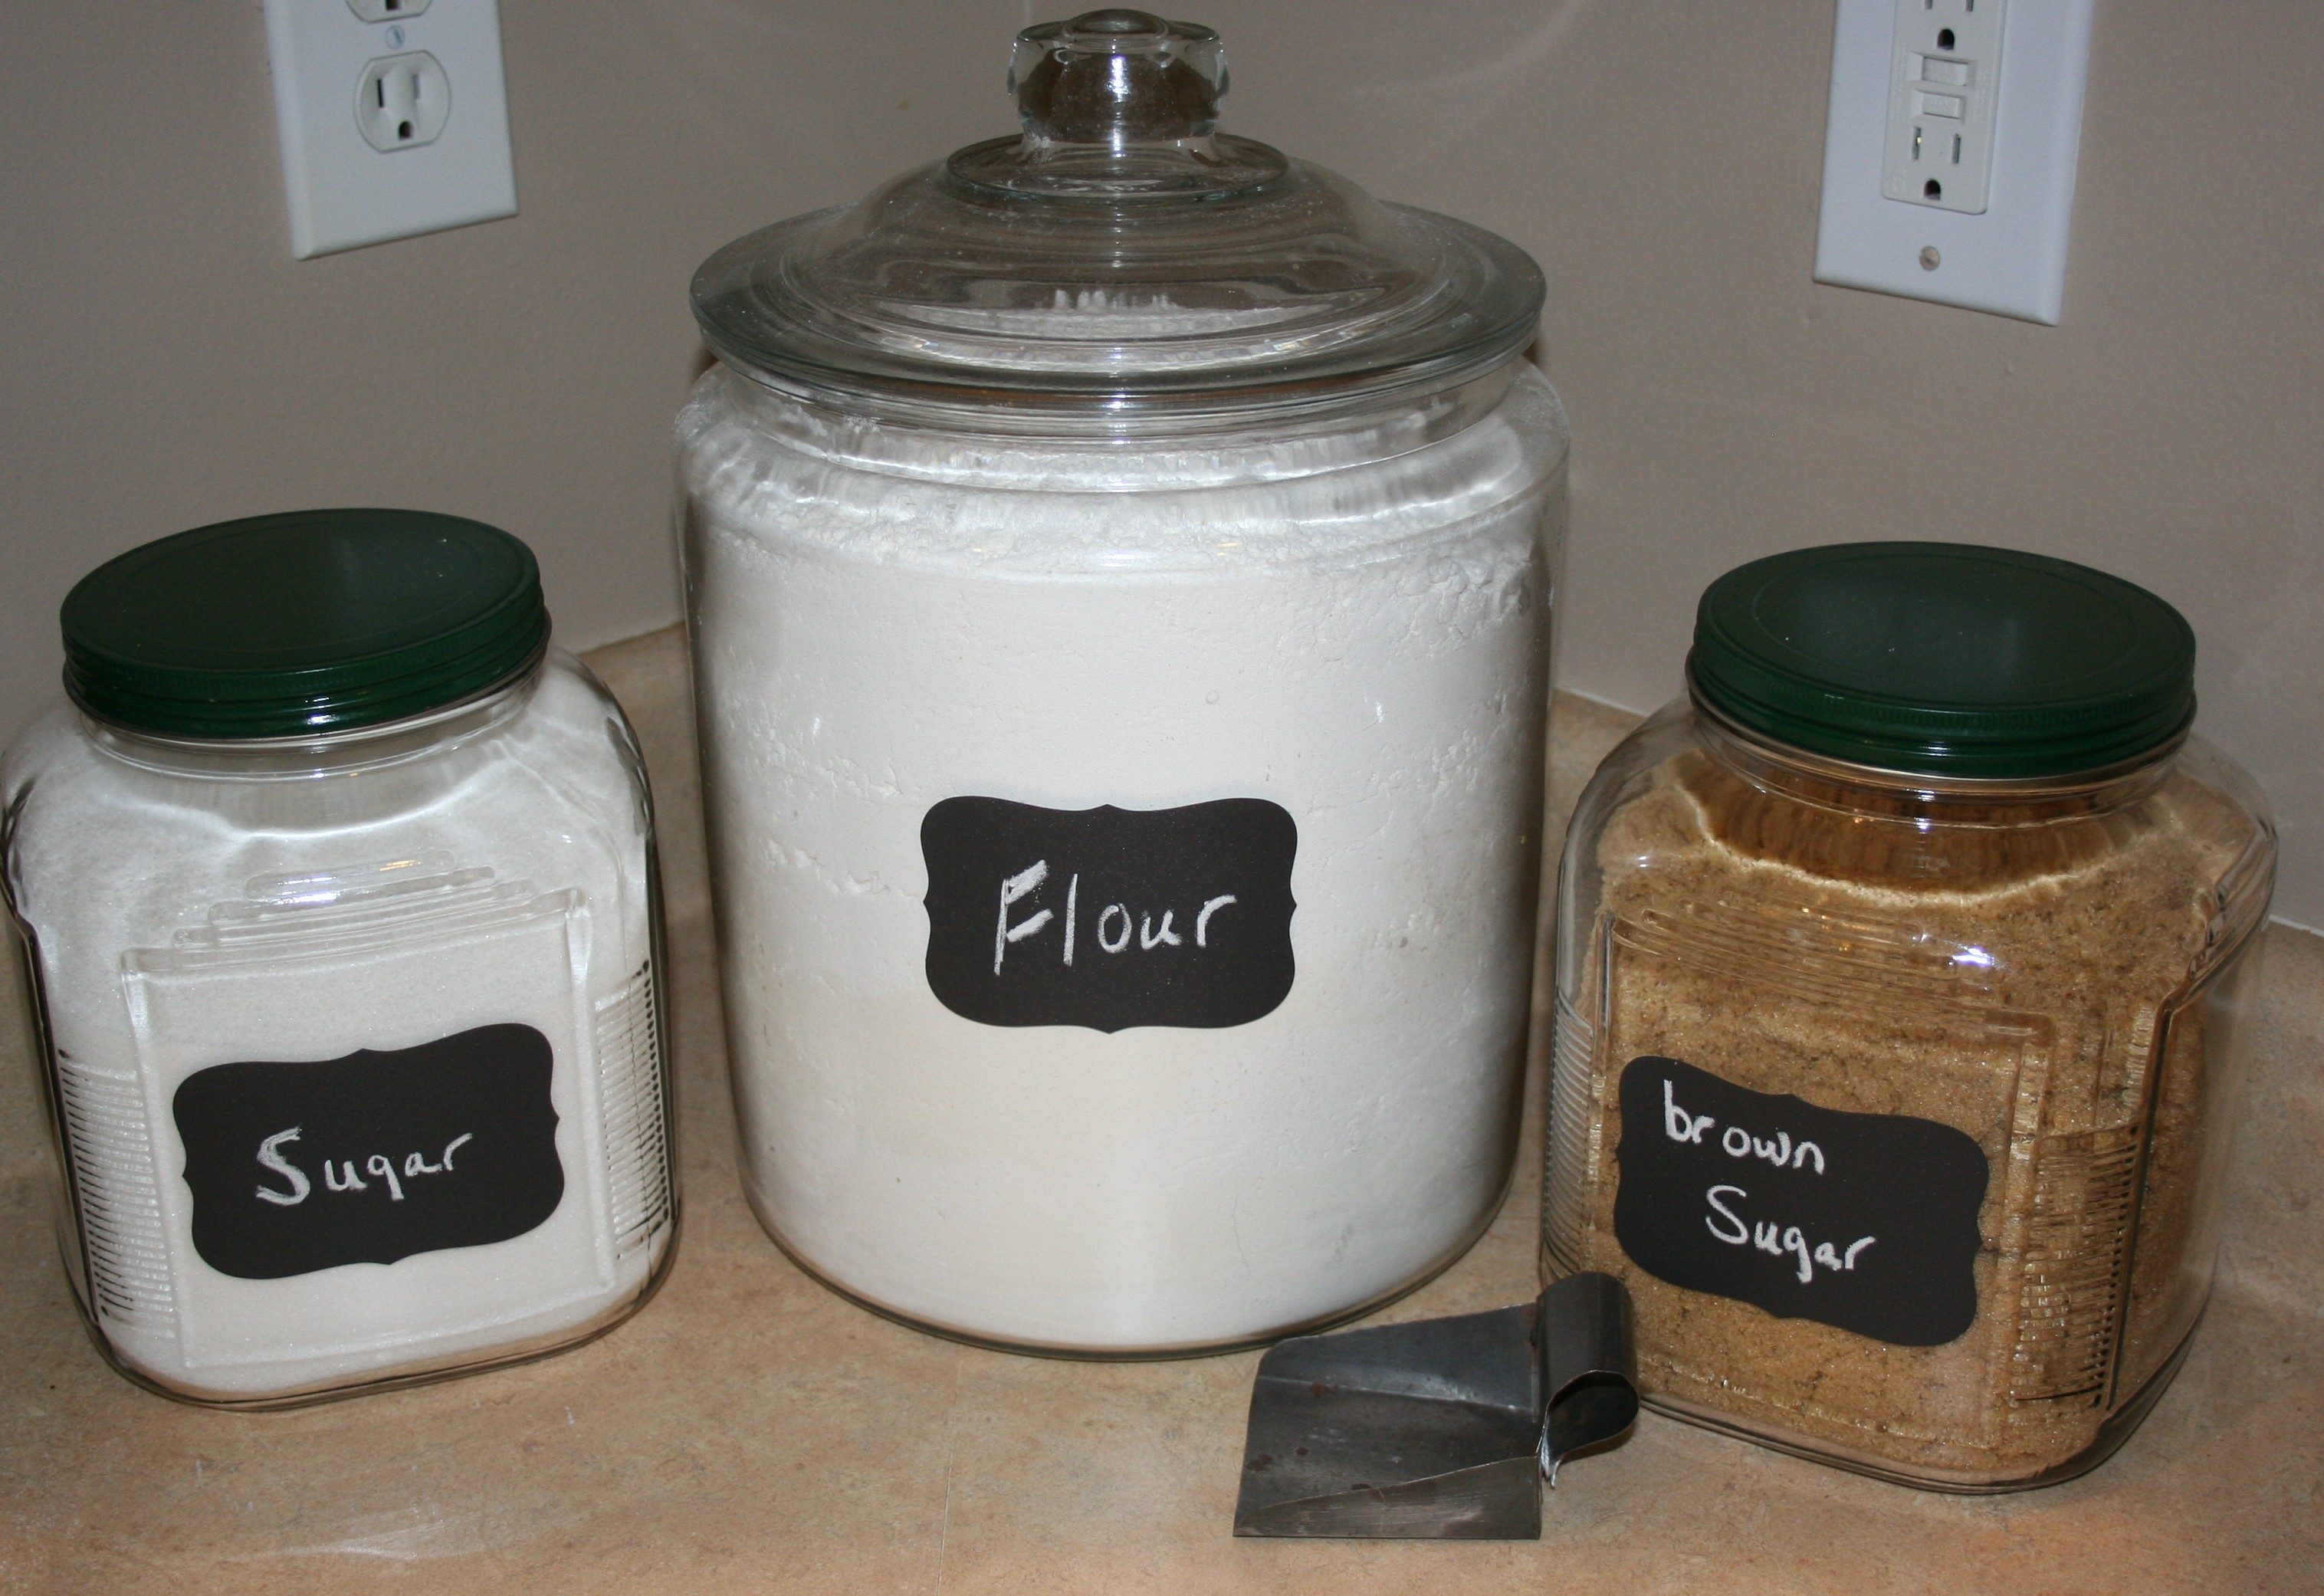 The Flour Container ...